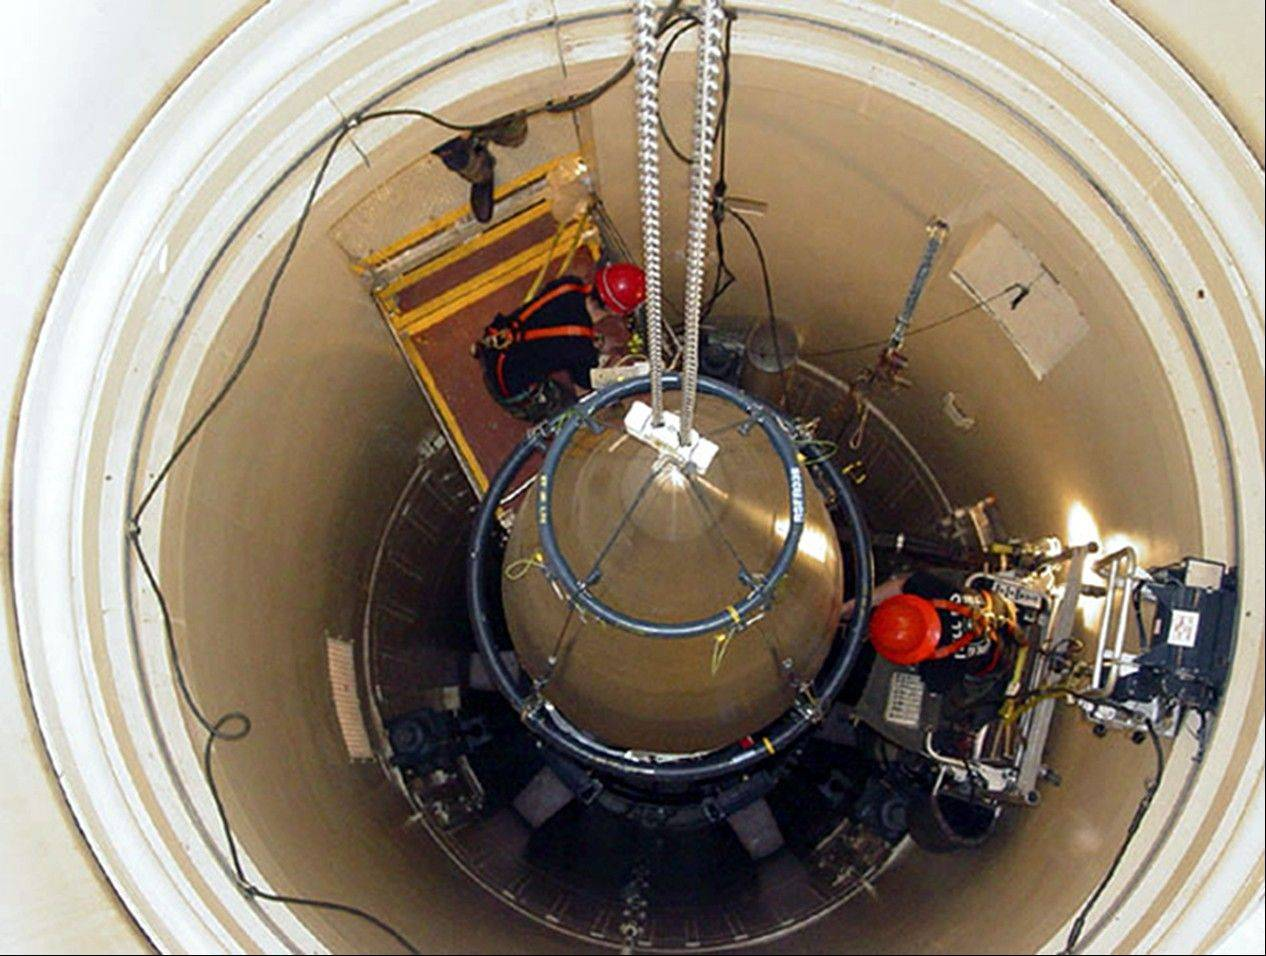 A Malmstrom Air Force Base missile maintenance team removes the upper section of an ICBM at a Montana missile site. An Air Force unit that operates one-third of the nation�s land-based nuclear missiles at Malmstrom Air Force Base, Mont., has failed a safety and security inspection.